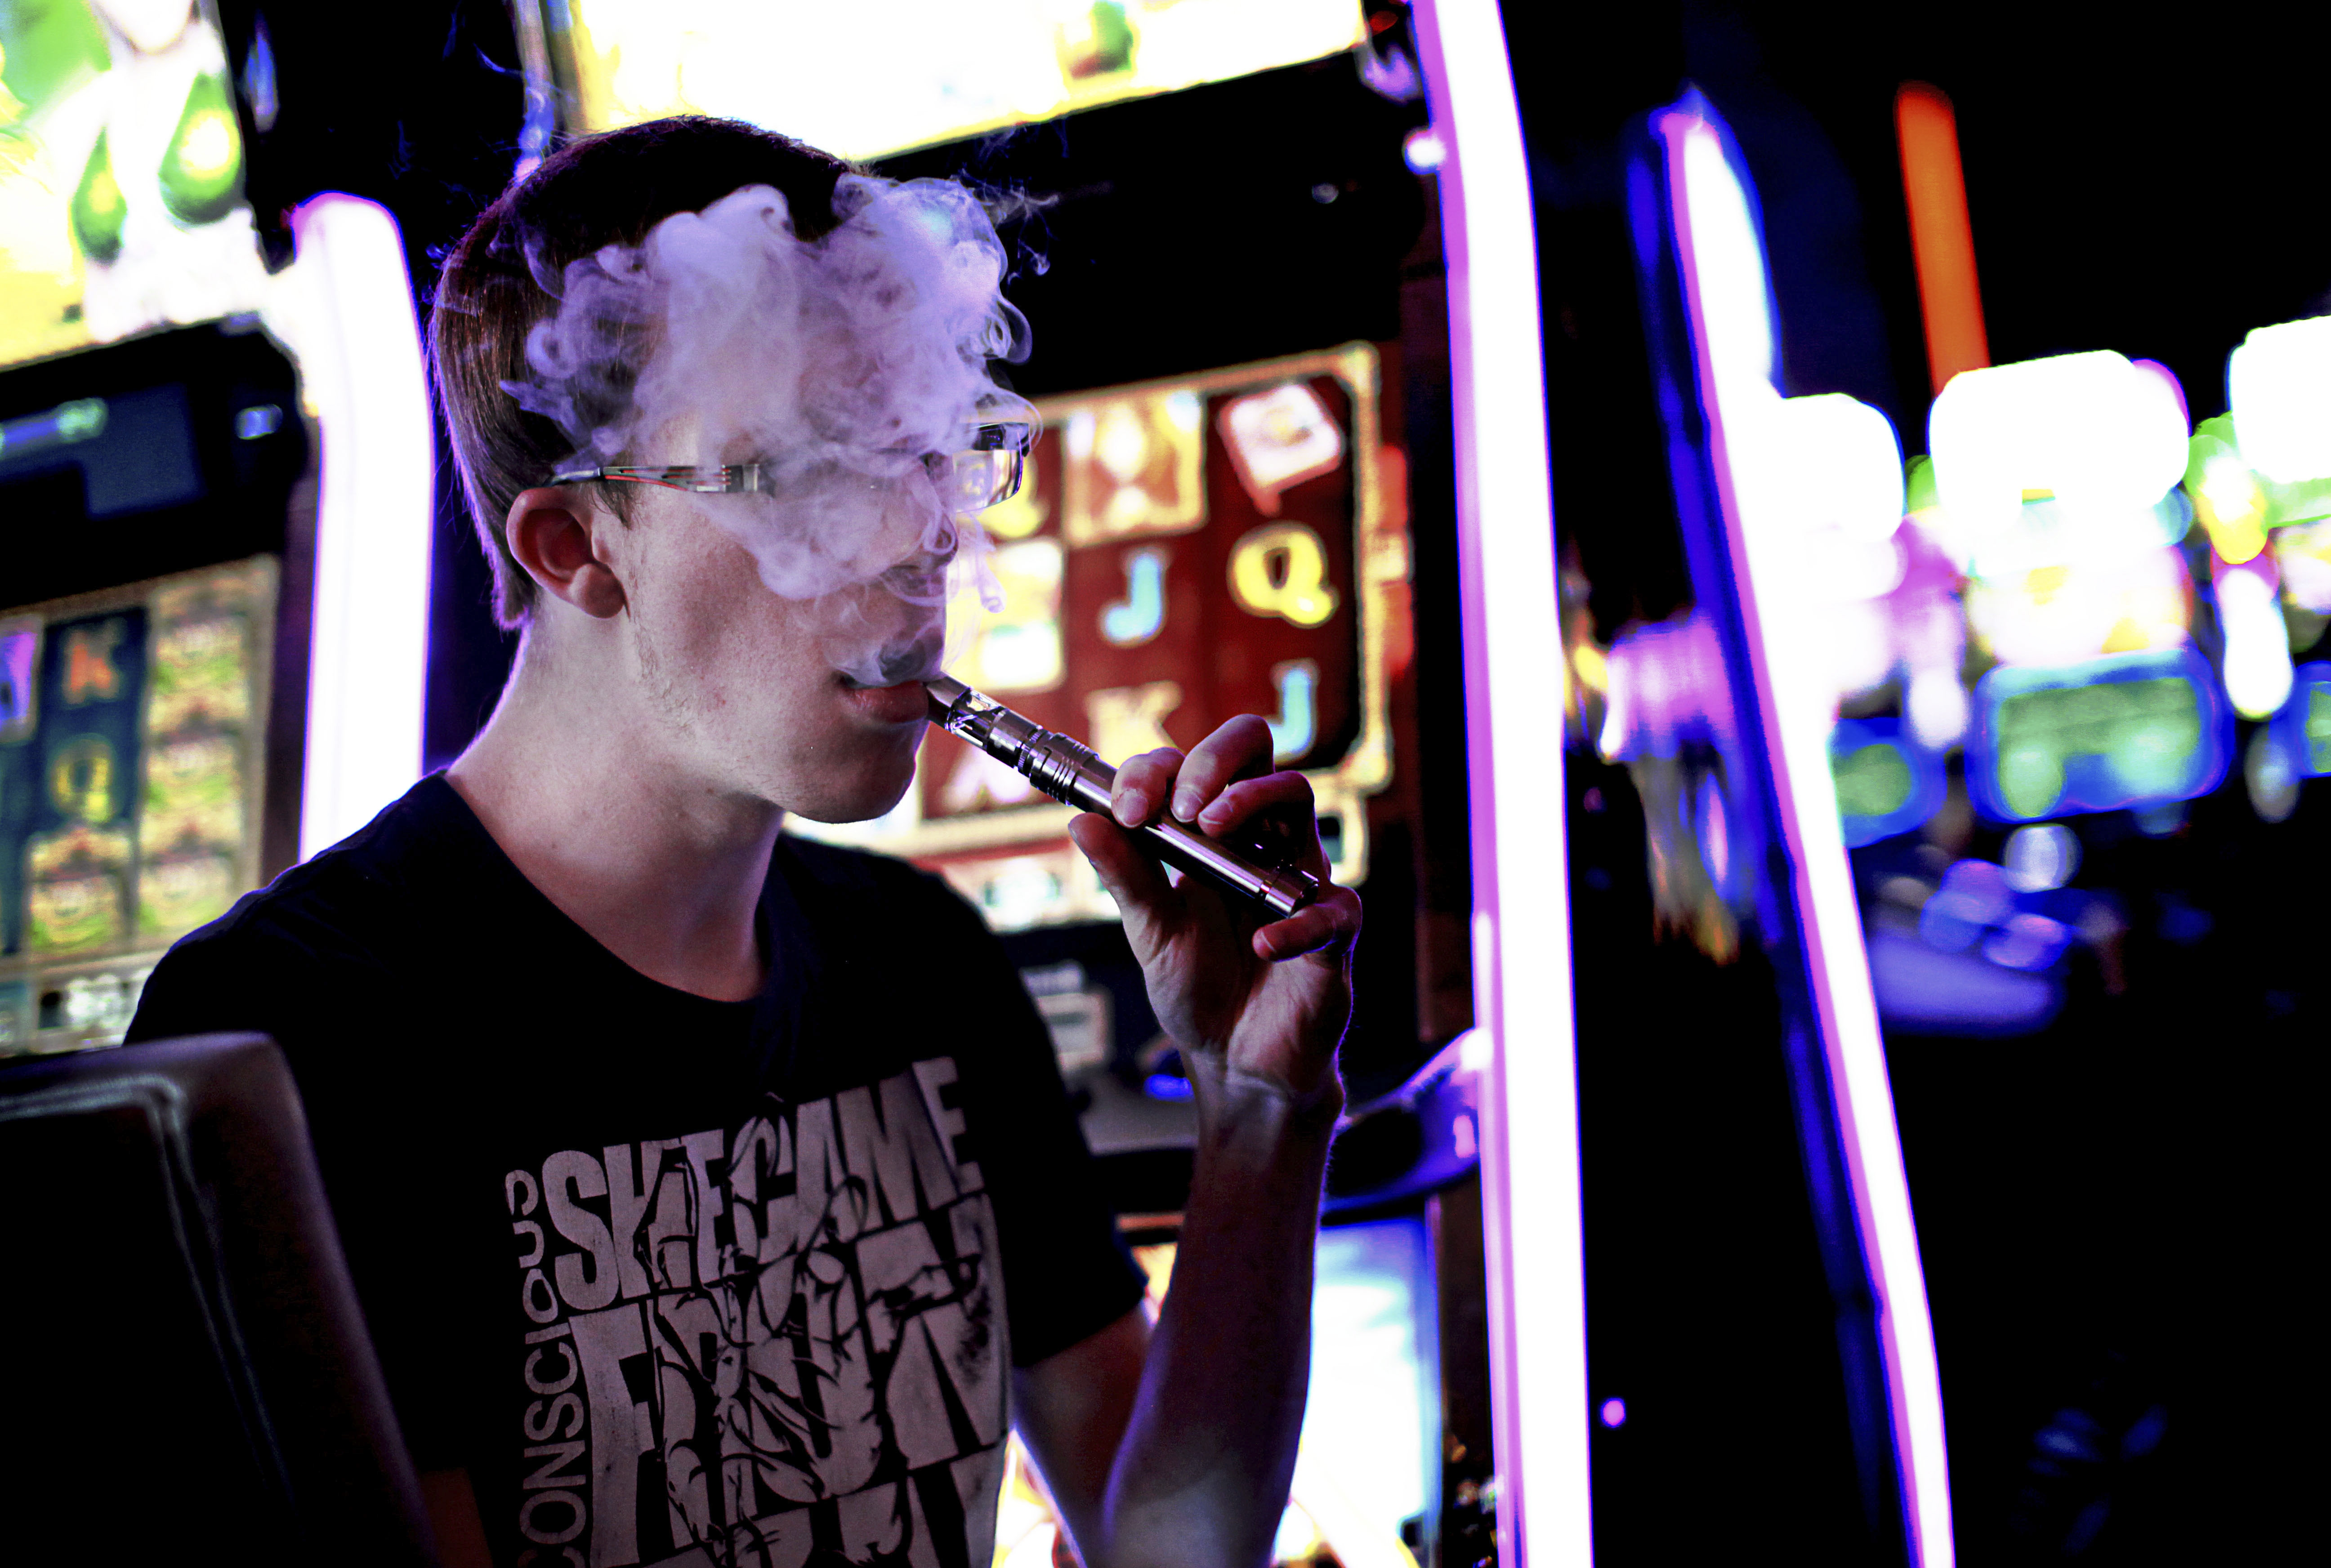 A casino patron exhales vapor from an e-cigarette, in Las Vegas, May 1, 2014. A study to be published this month in Nicotine and Tobacco Research suggests that e-cigarettes can get hot enough to produce the same carcinogens as cigarettes, undercutting health claims and underscoring the uncertainties in a rapidly-evolving  industry that regulators are struggling to keep pace with. (Sandy Huffaker/The New York Times)